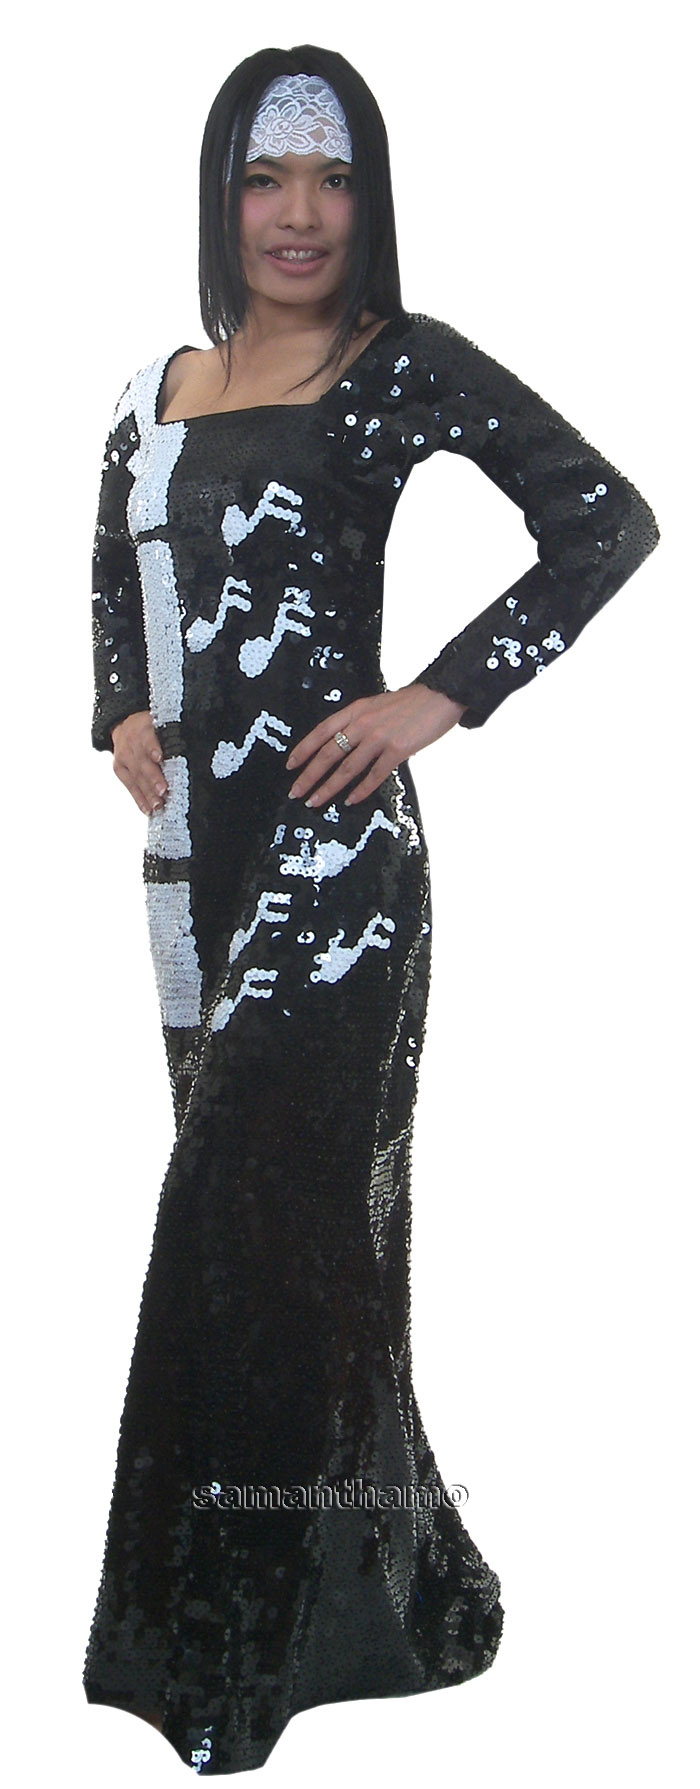 https://michaeljacksoncelebrityclothing.com/sequin-drag-ball-gown/TM2006-sequin-cabaret-piano-gown.jpg